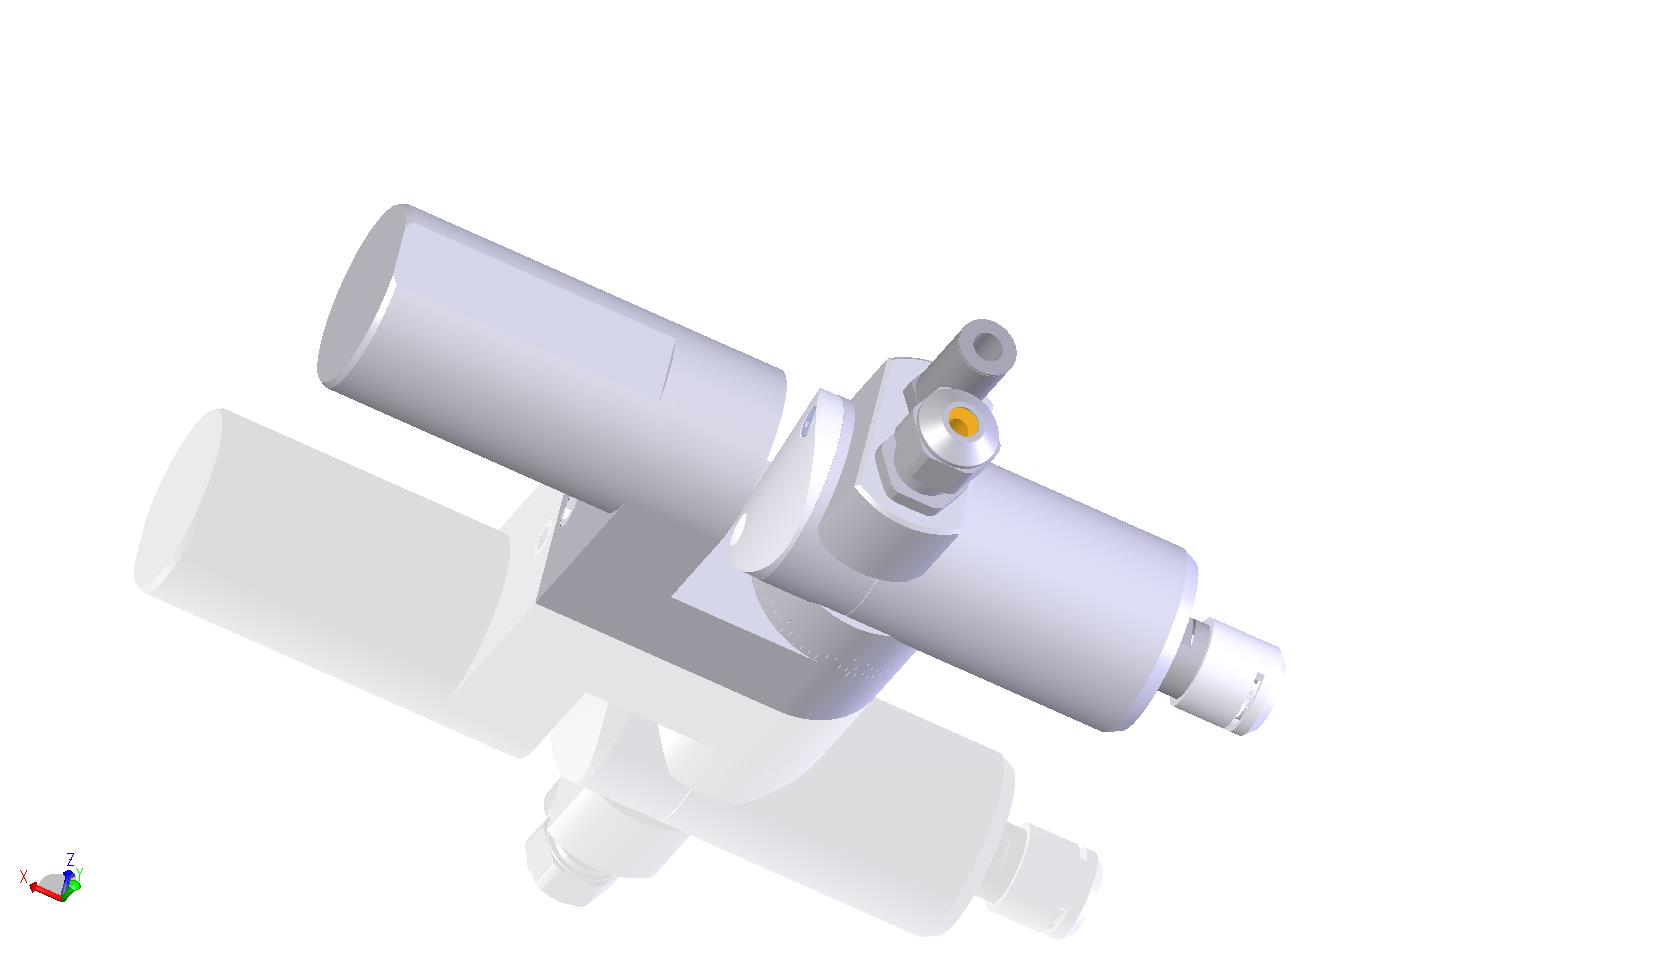 HT 25 S 60 CS - adjustable angle with 90° connector and midsized shaft